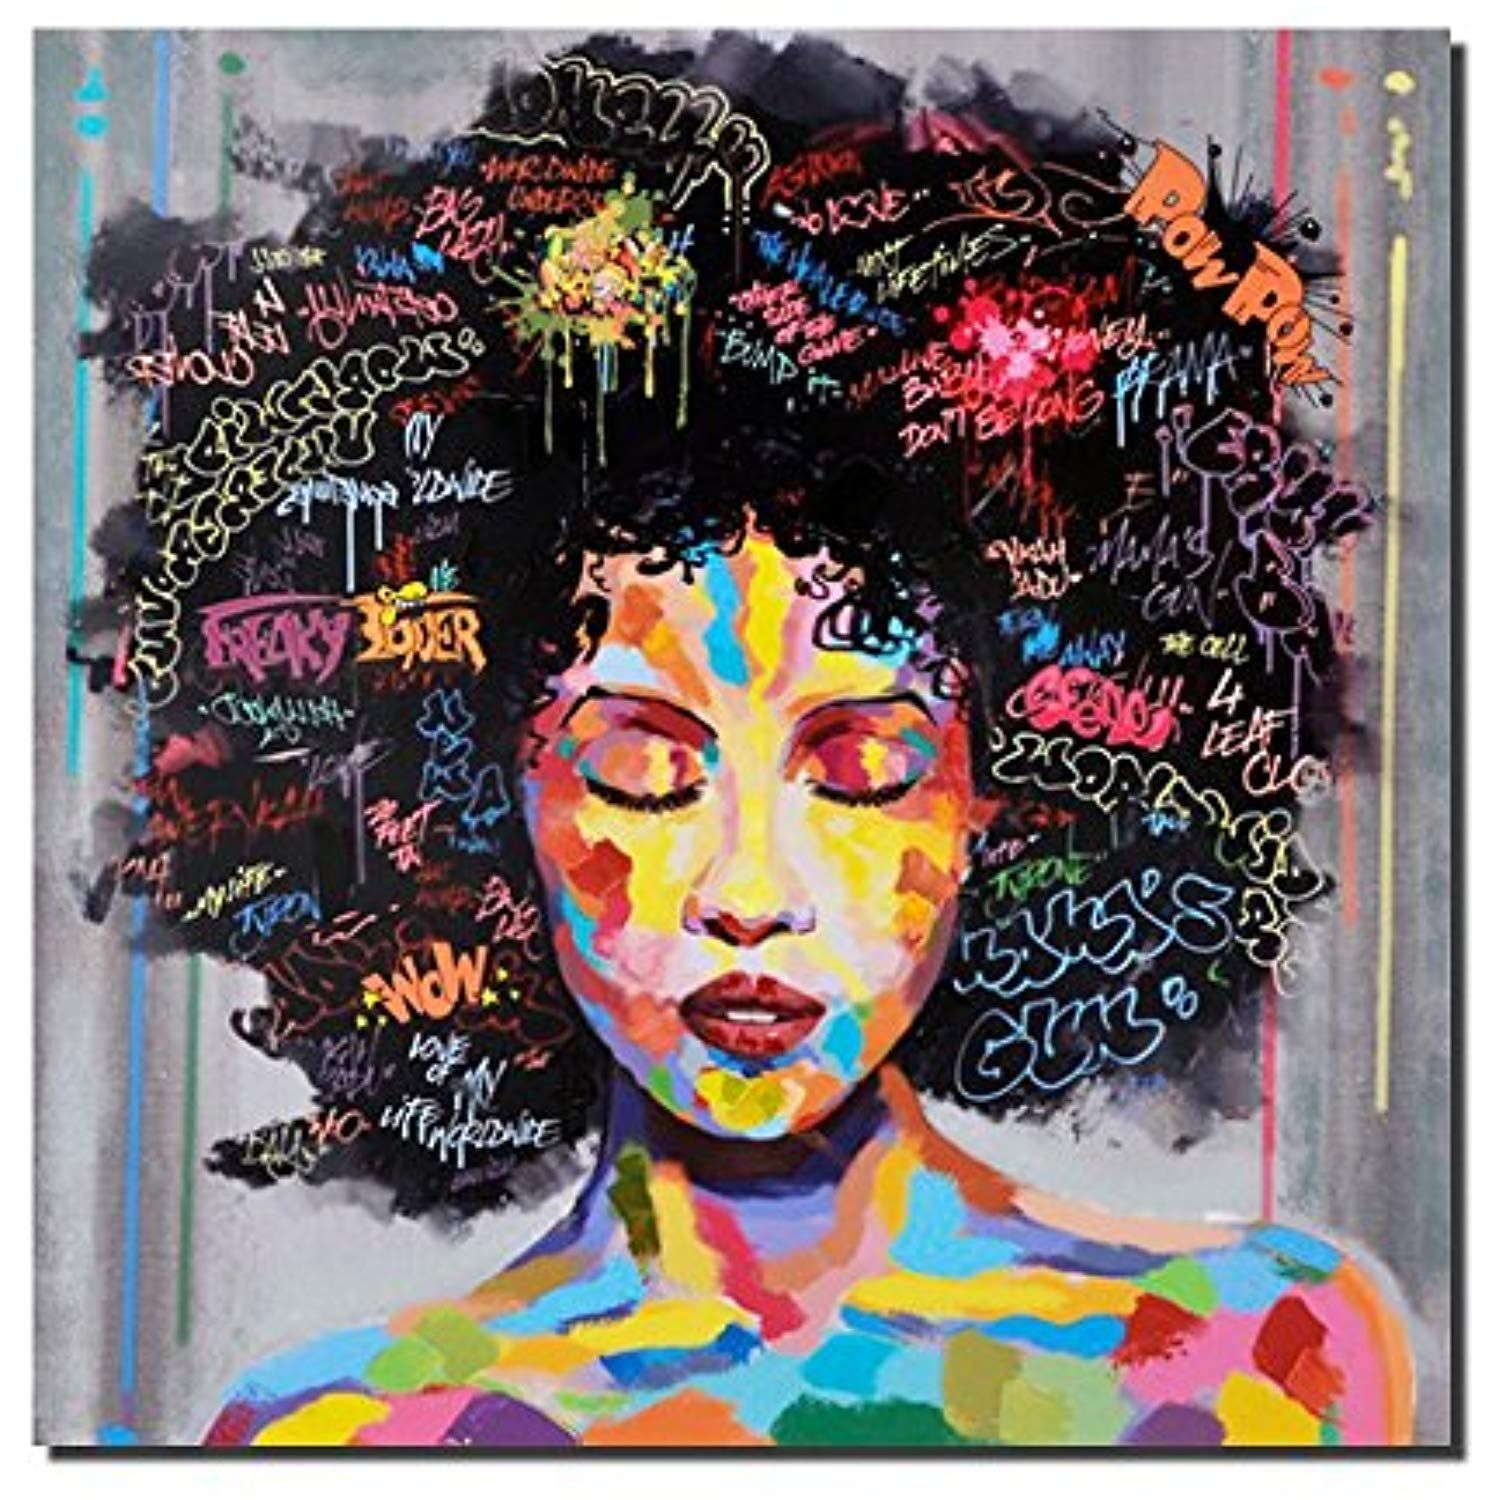 90 by 60cm Black Queen painting Original canvas art Black women painting 26 by 35